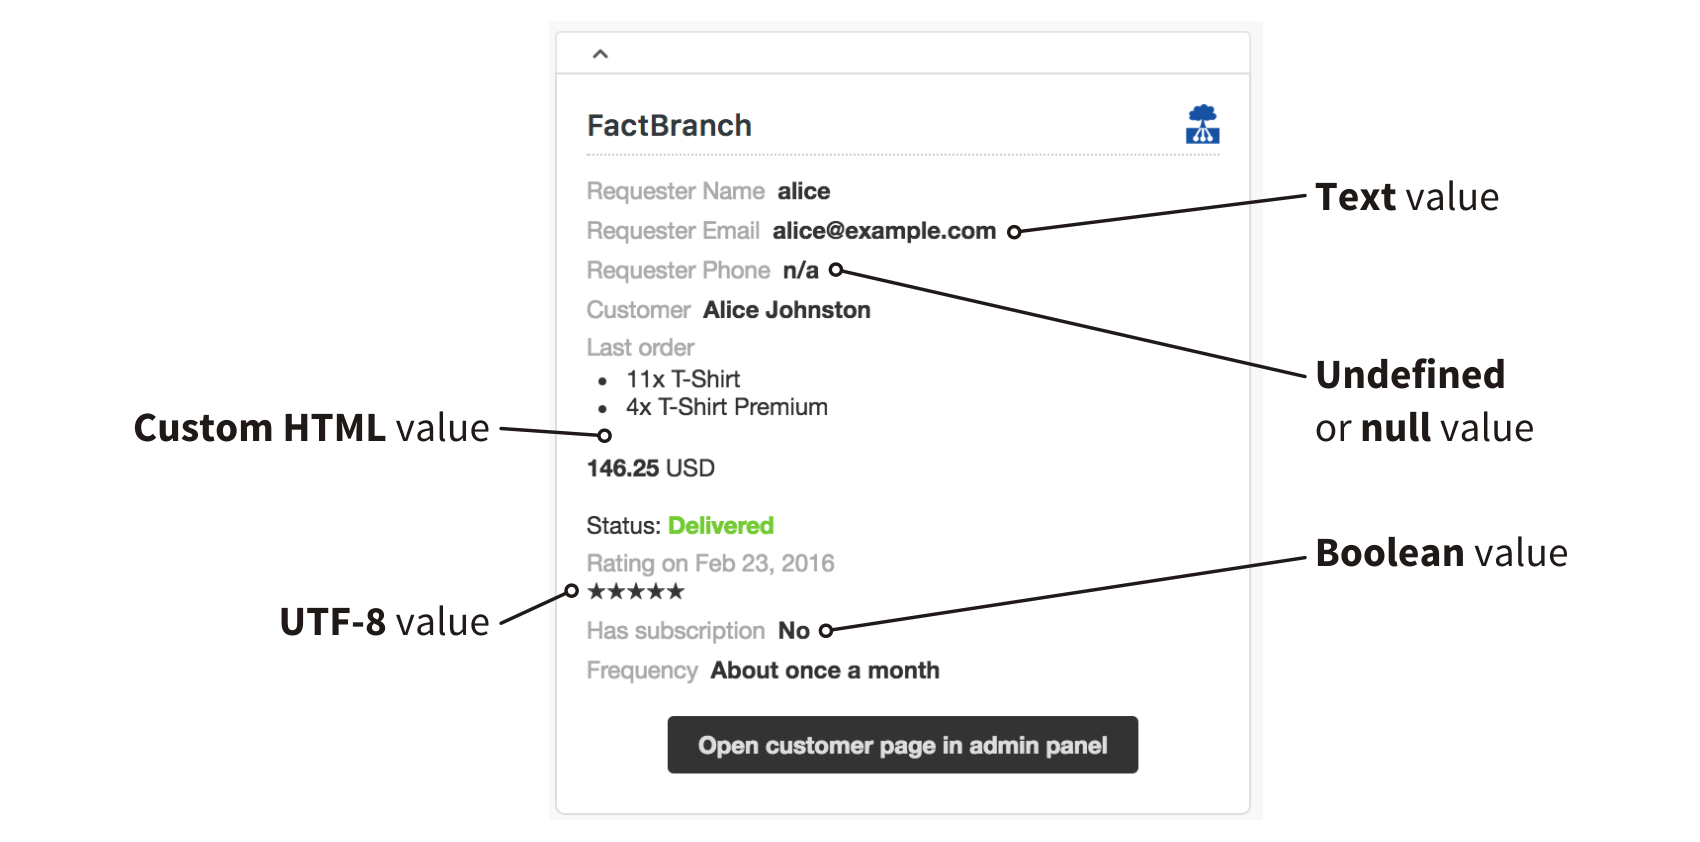 FactBranch and Google Sheets - Customer data right next to the